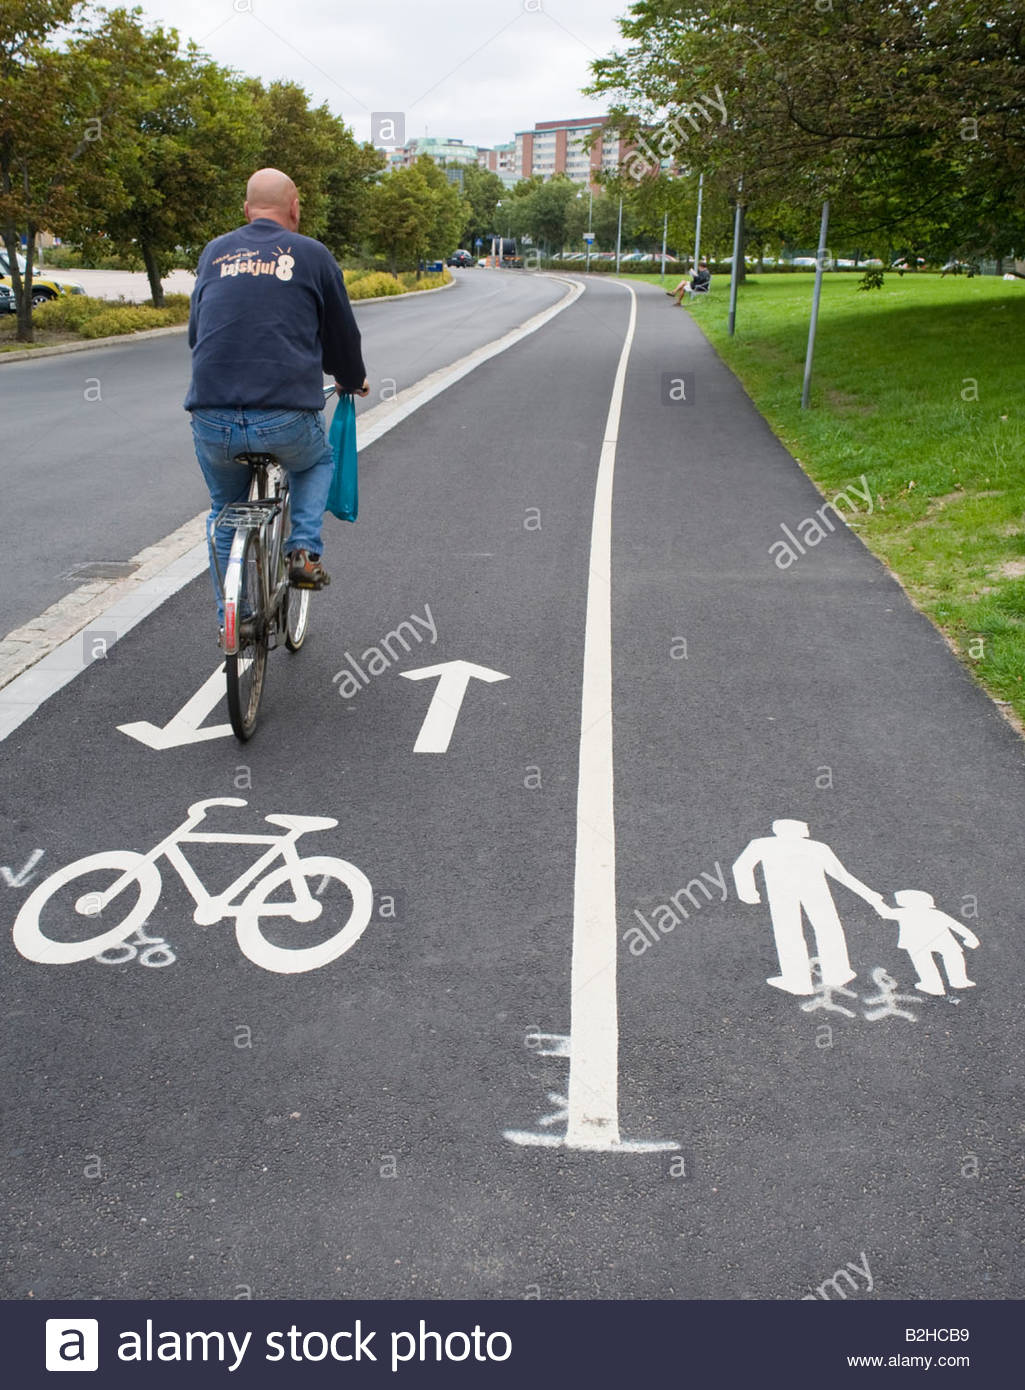 Painted sign on footpath to indicate segregated lanes for walking and cycling in Sweden 2008 - Stock Image